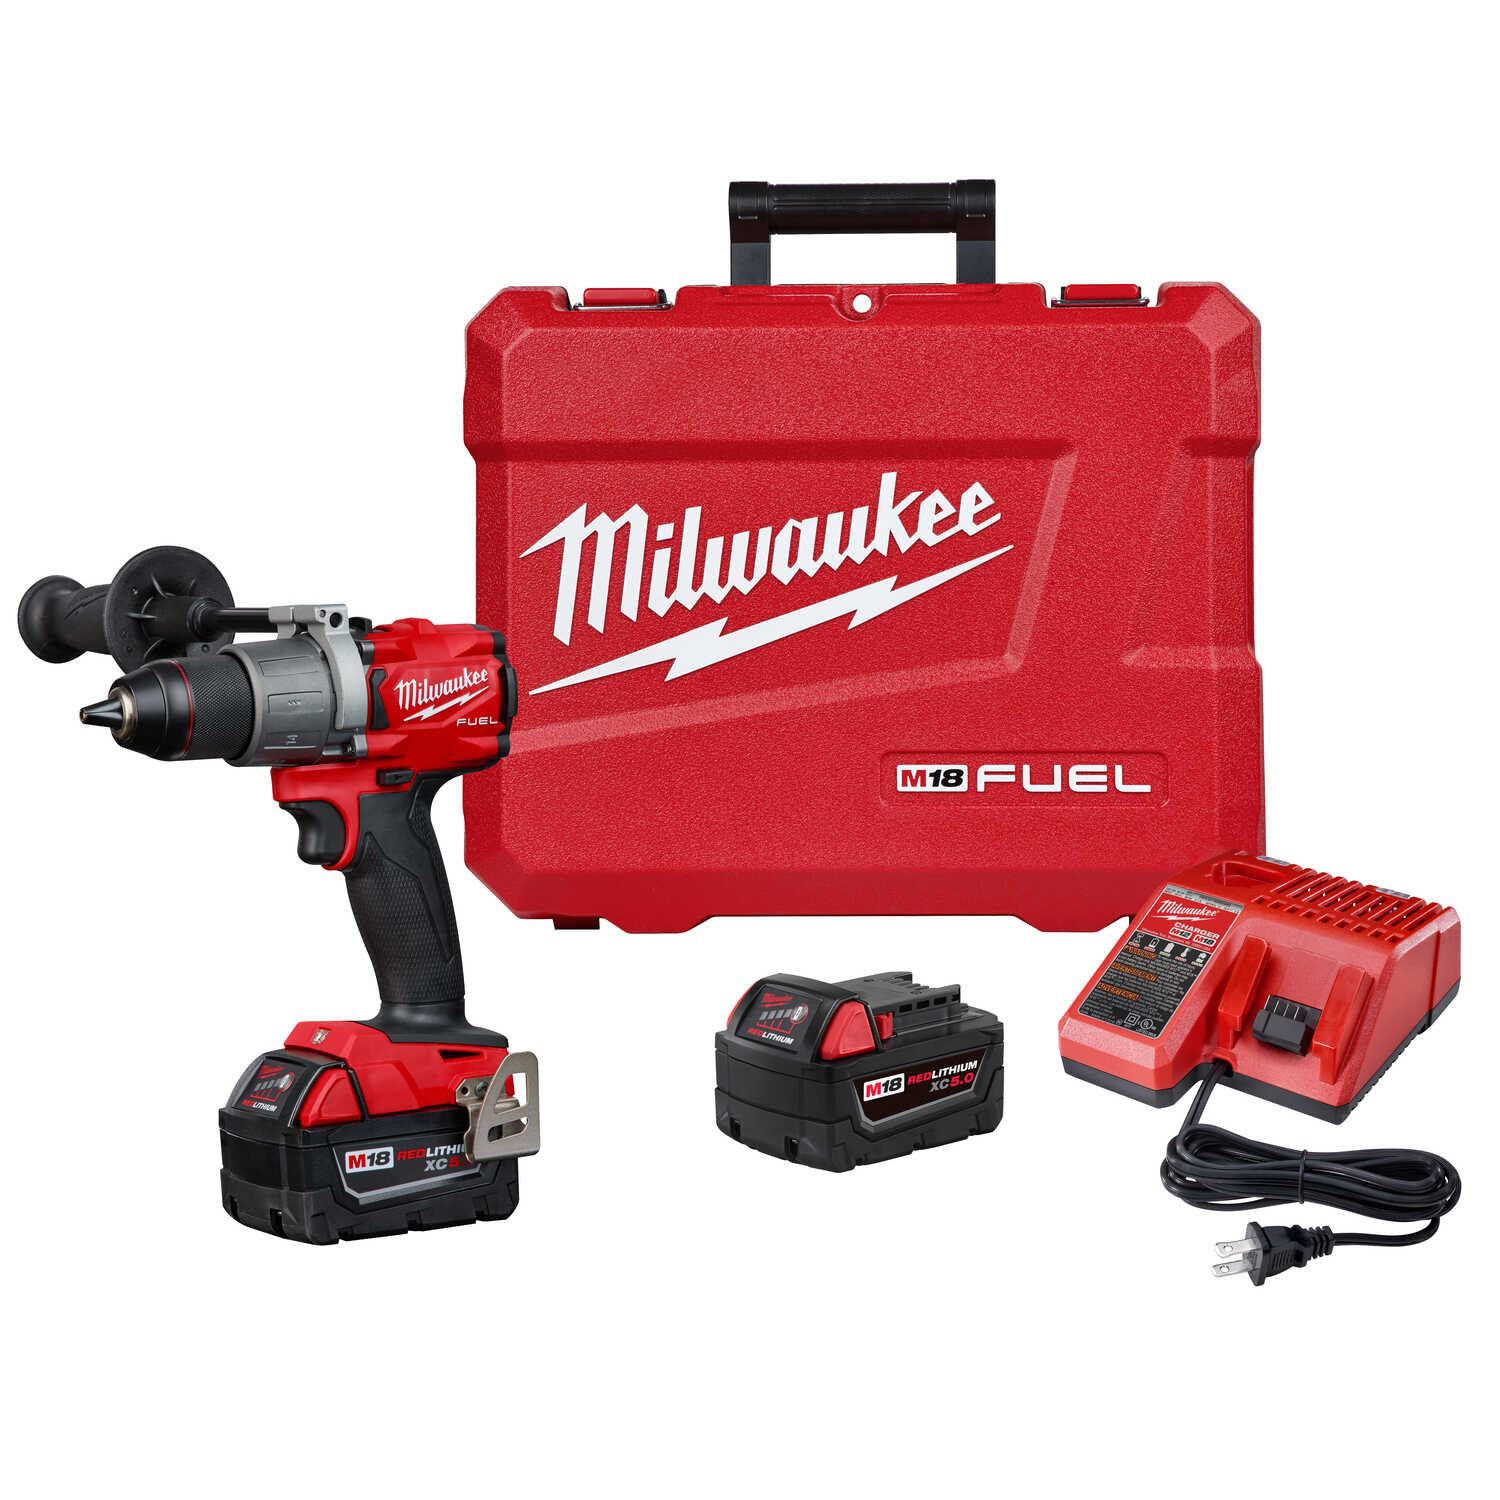 Milwaukee  M18 FUEL  18 volt 1/2 in. Brushless Cordless Drill/Driver  Kit 2000 rpm 2 speed